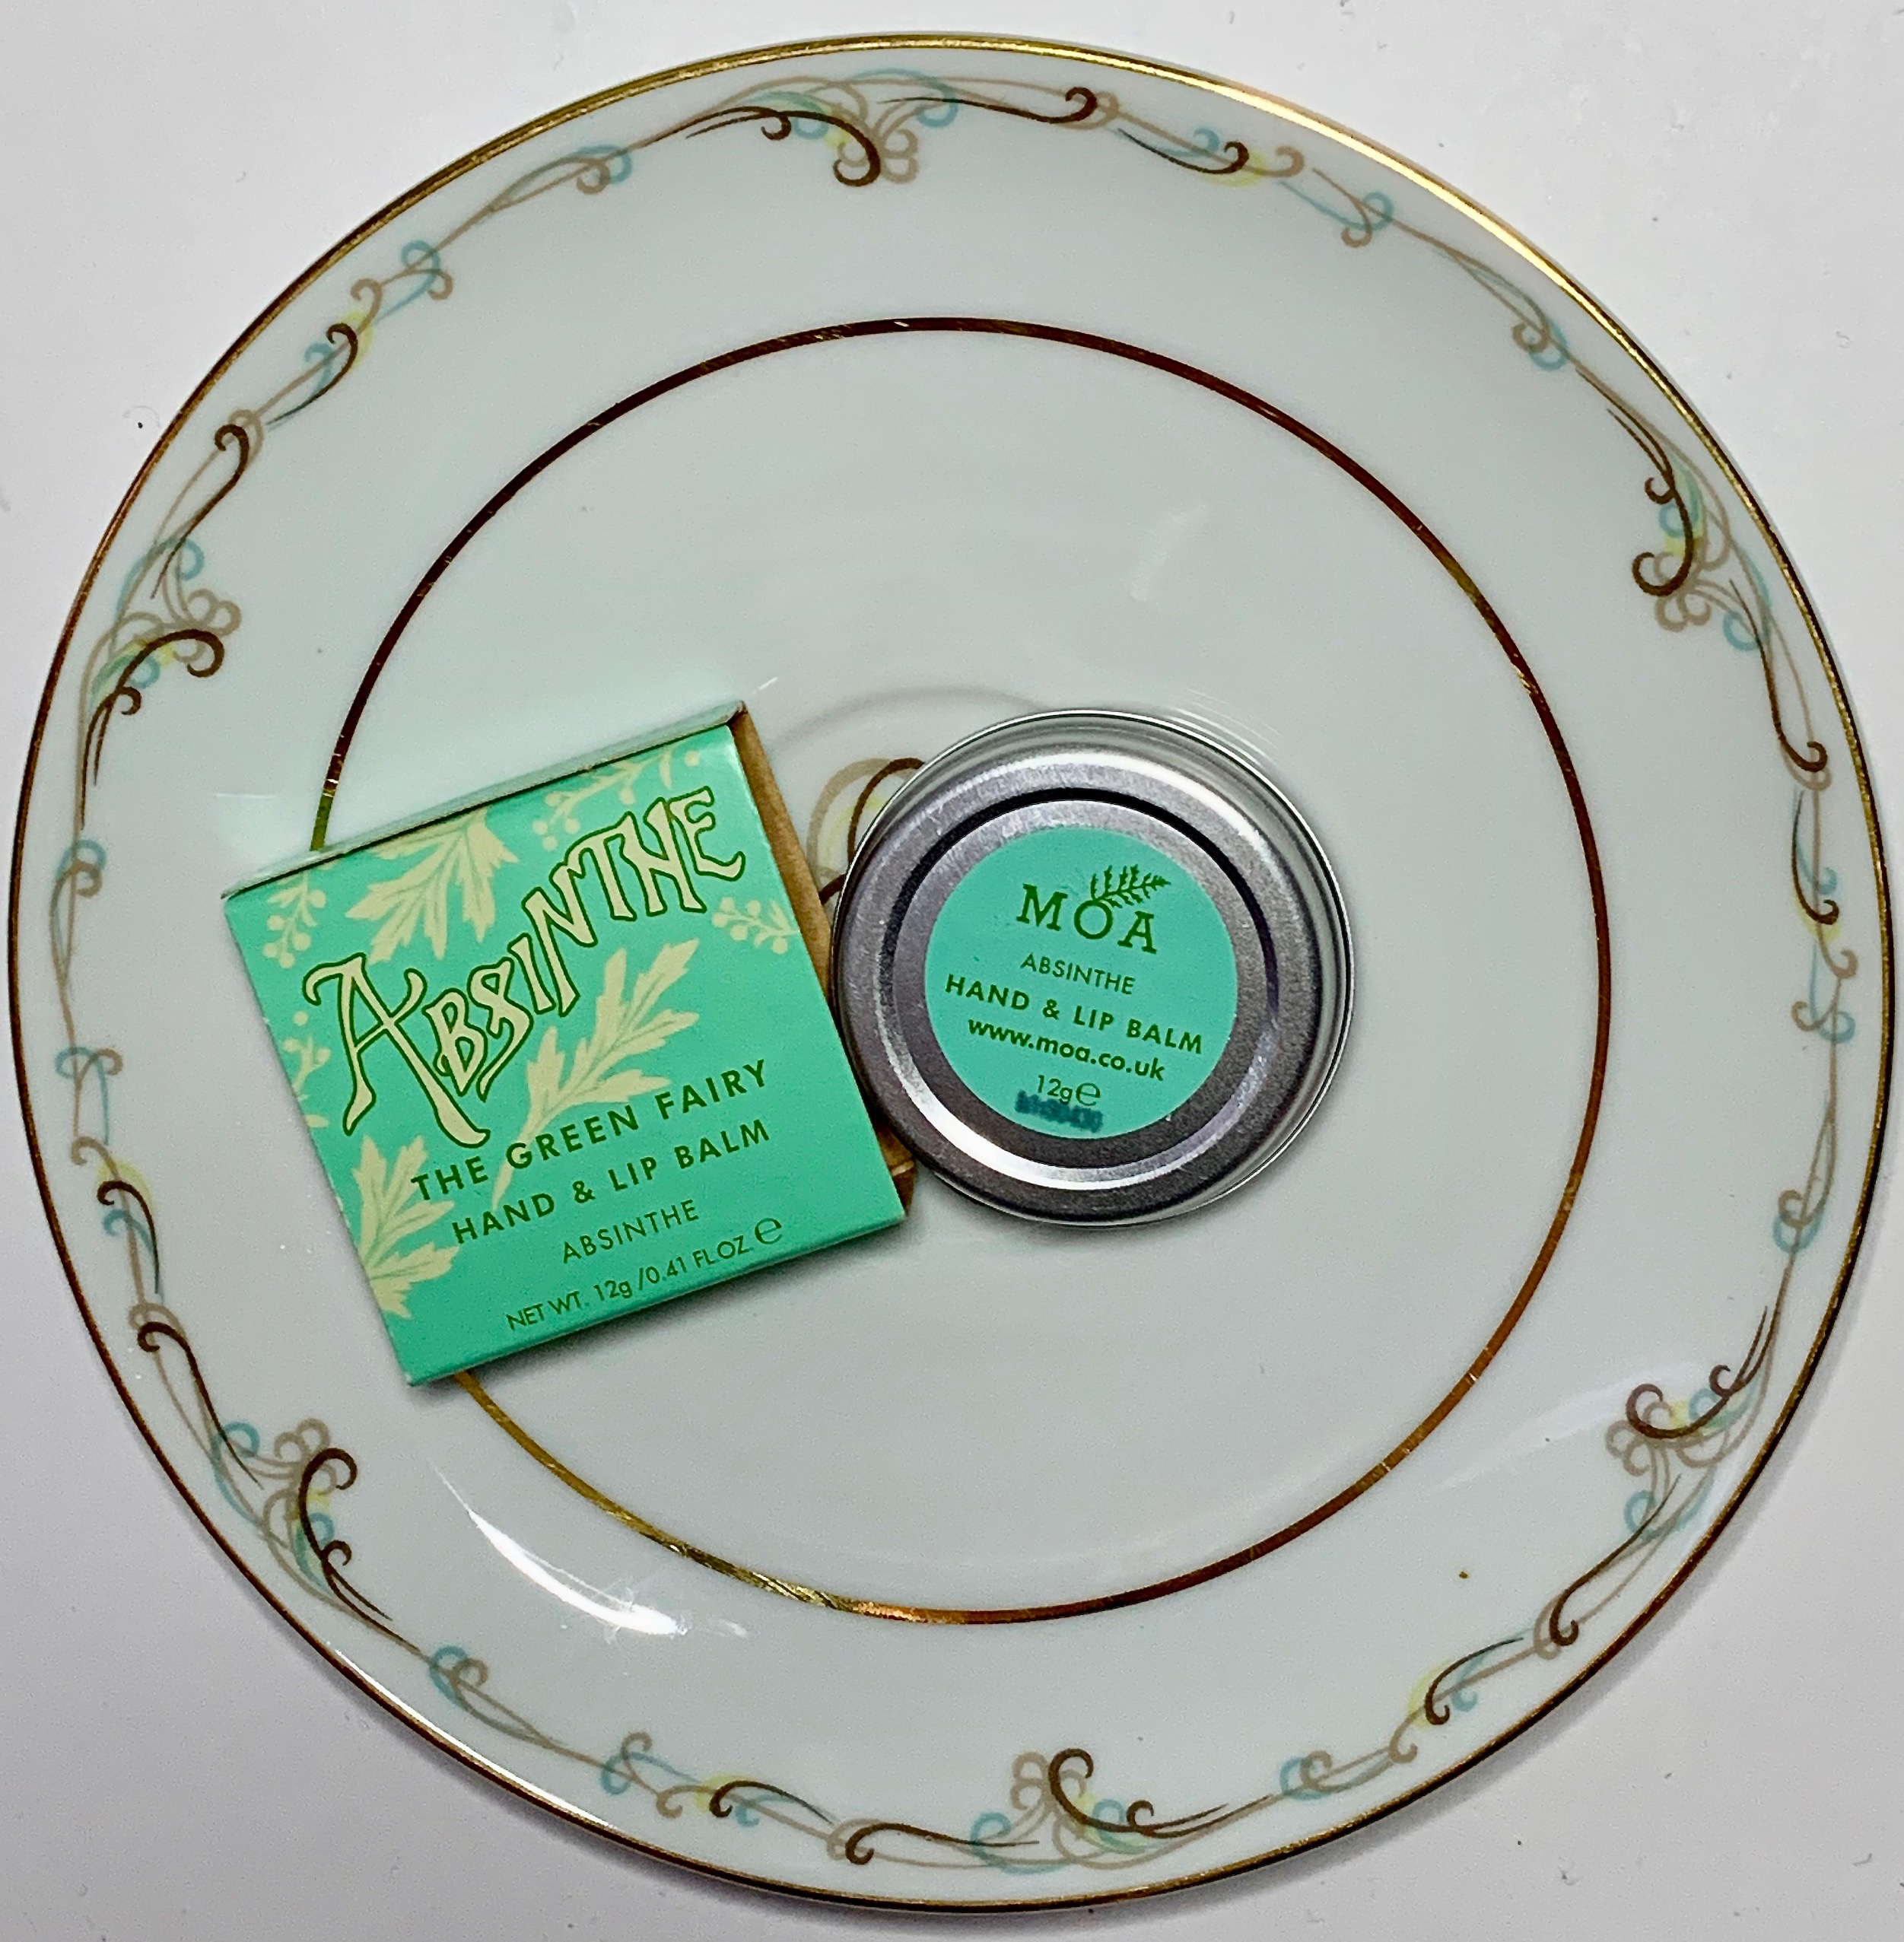 MOA Absinthe The Green Fairy Hand & Lip Balm